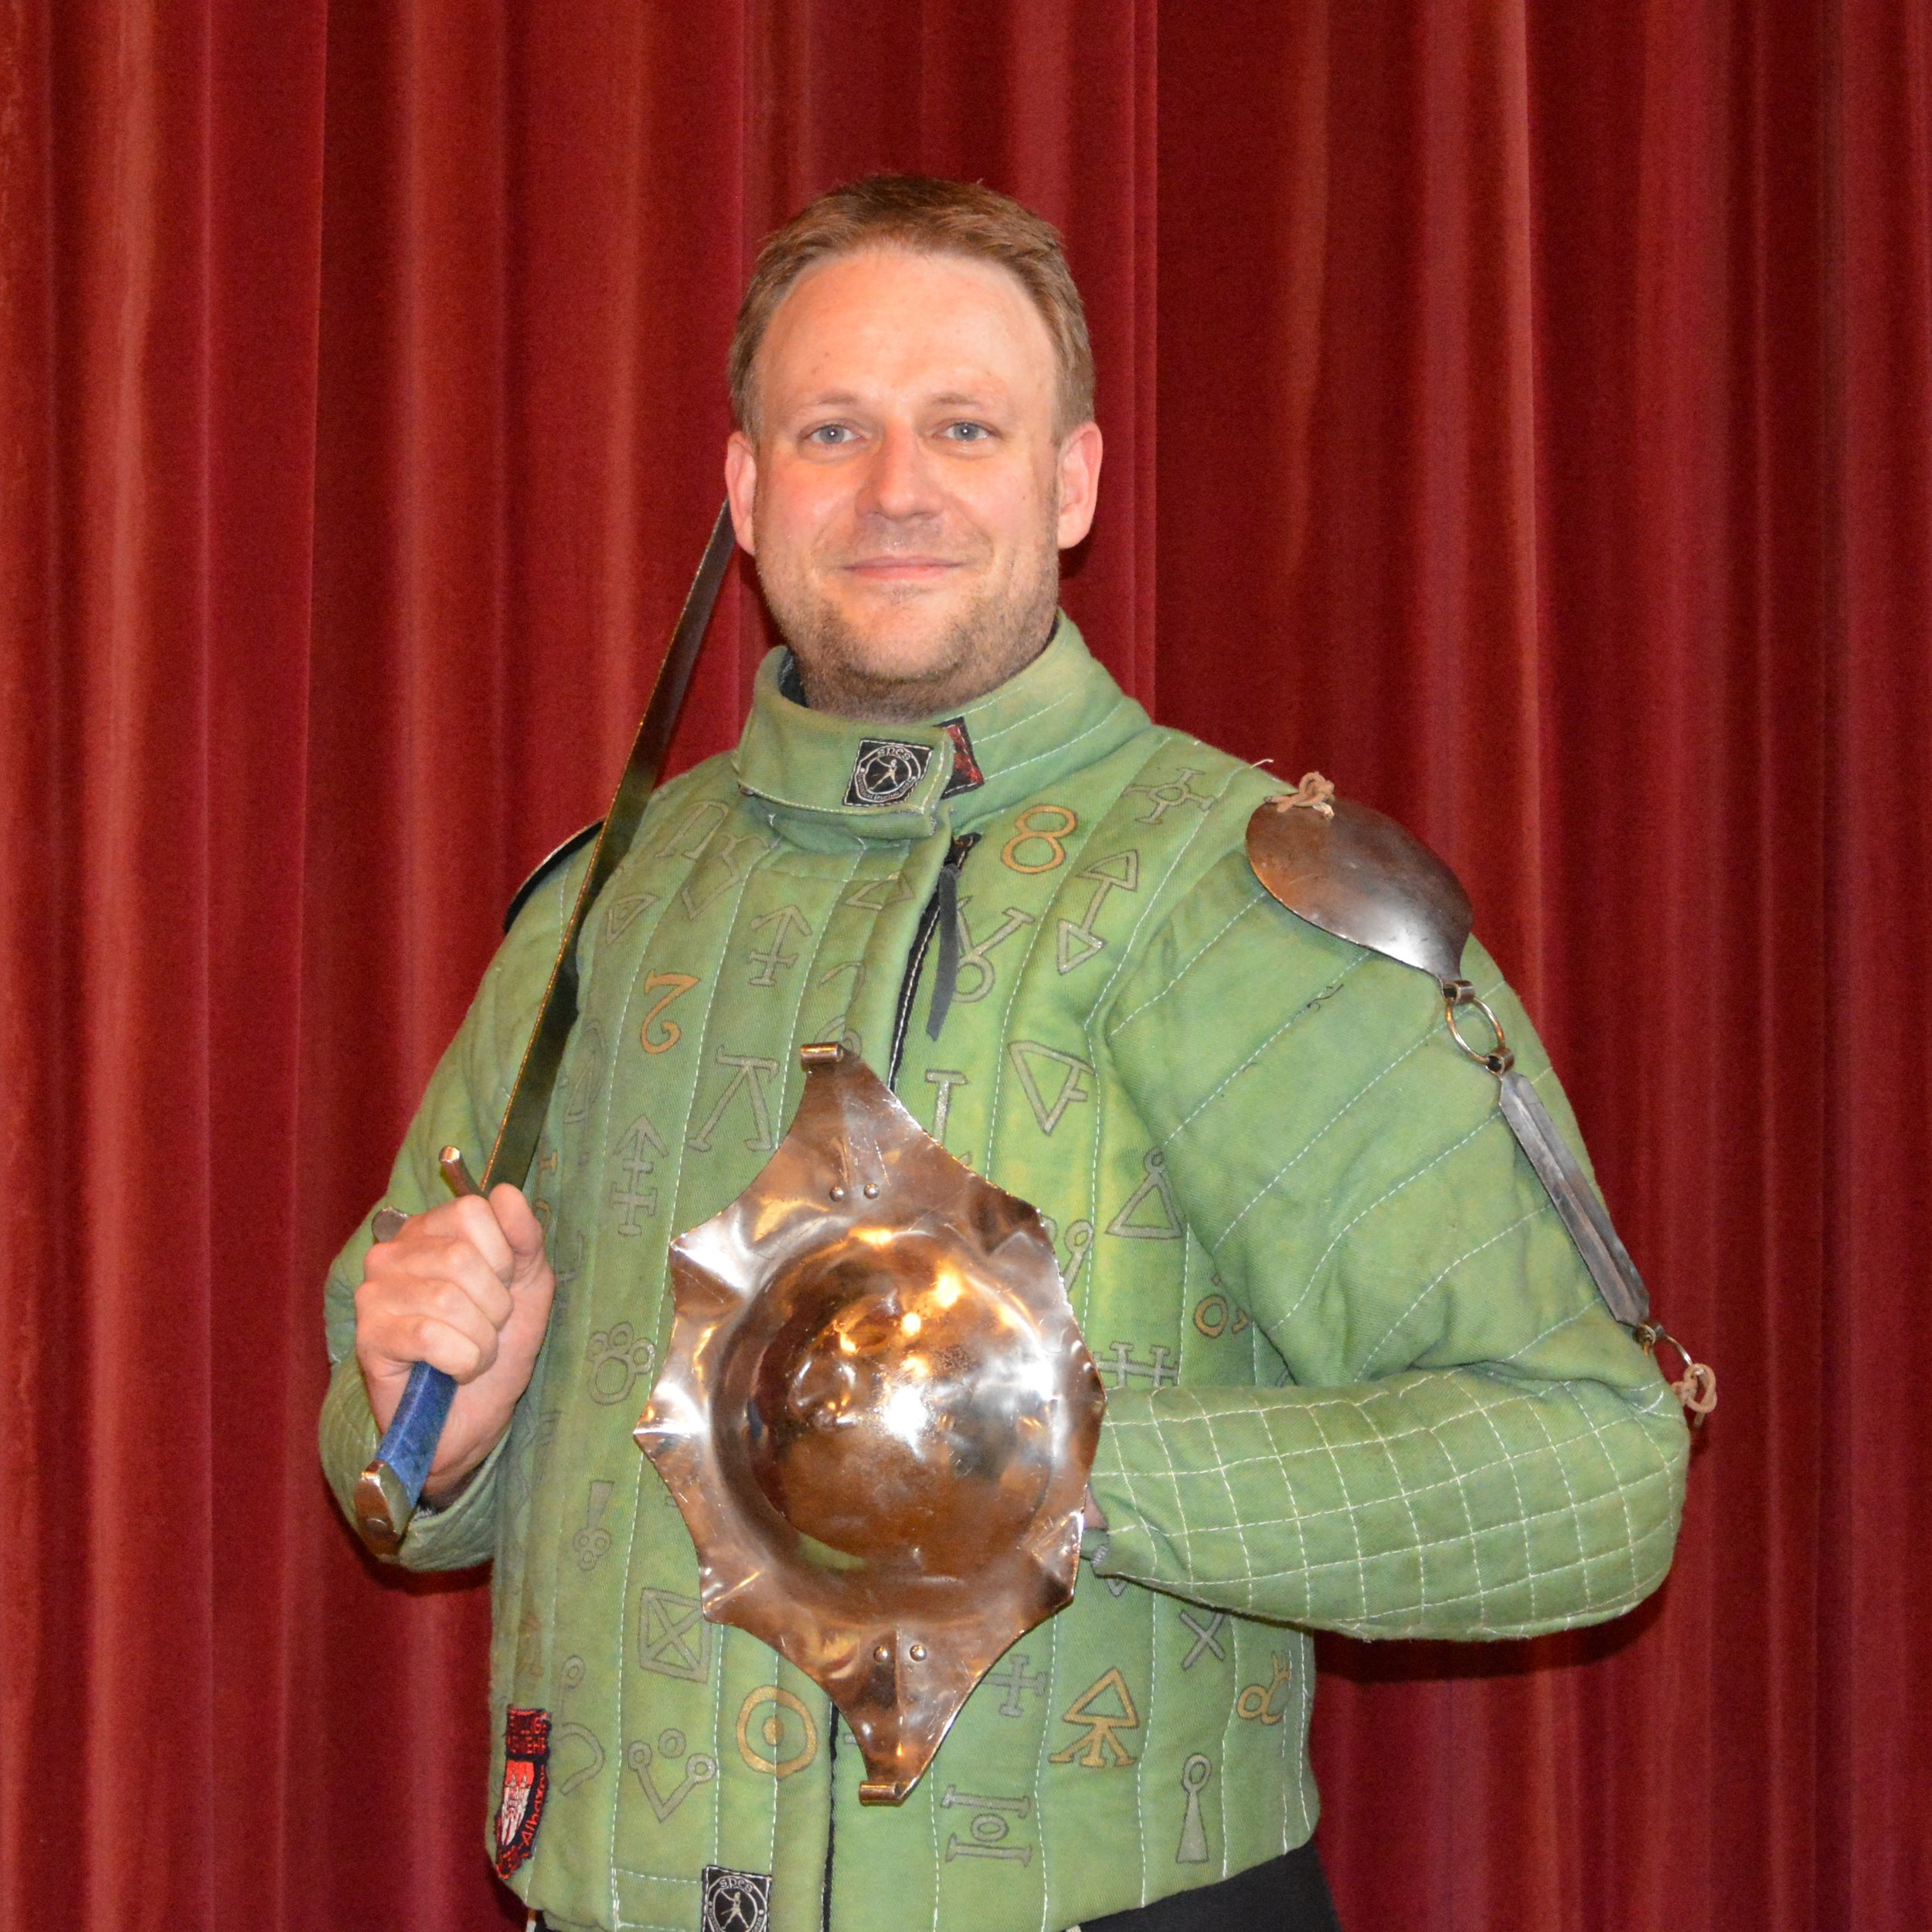 Christoph Busche - Committee Member and Co-Founder of Glasgow HEMADisciplines Studied: German Longsword, Messer and DussackA chemist working in research at the University of Glasgow, I started practicing HEMA in 2012. At the beginning focusing on longsword in the German / Lichtenauer tradition. Later expanding into Messer fencing, particularly from the Glasgow Fechtbuch and the Lecküchner manuscripts and more recently Dussack as well.